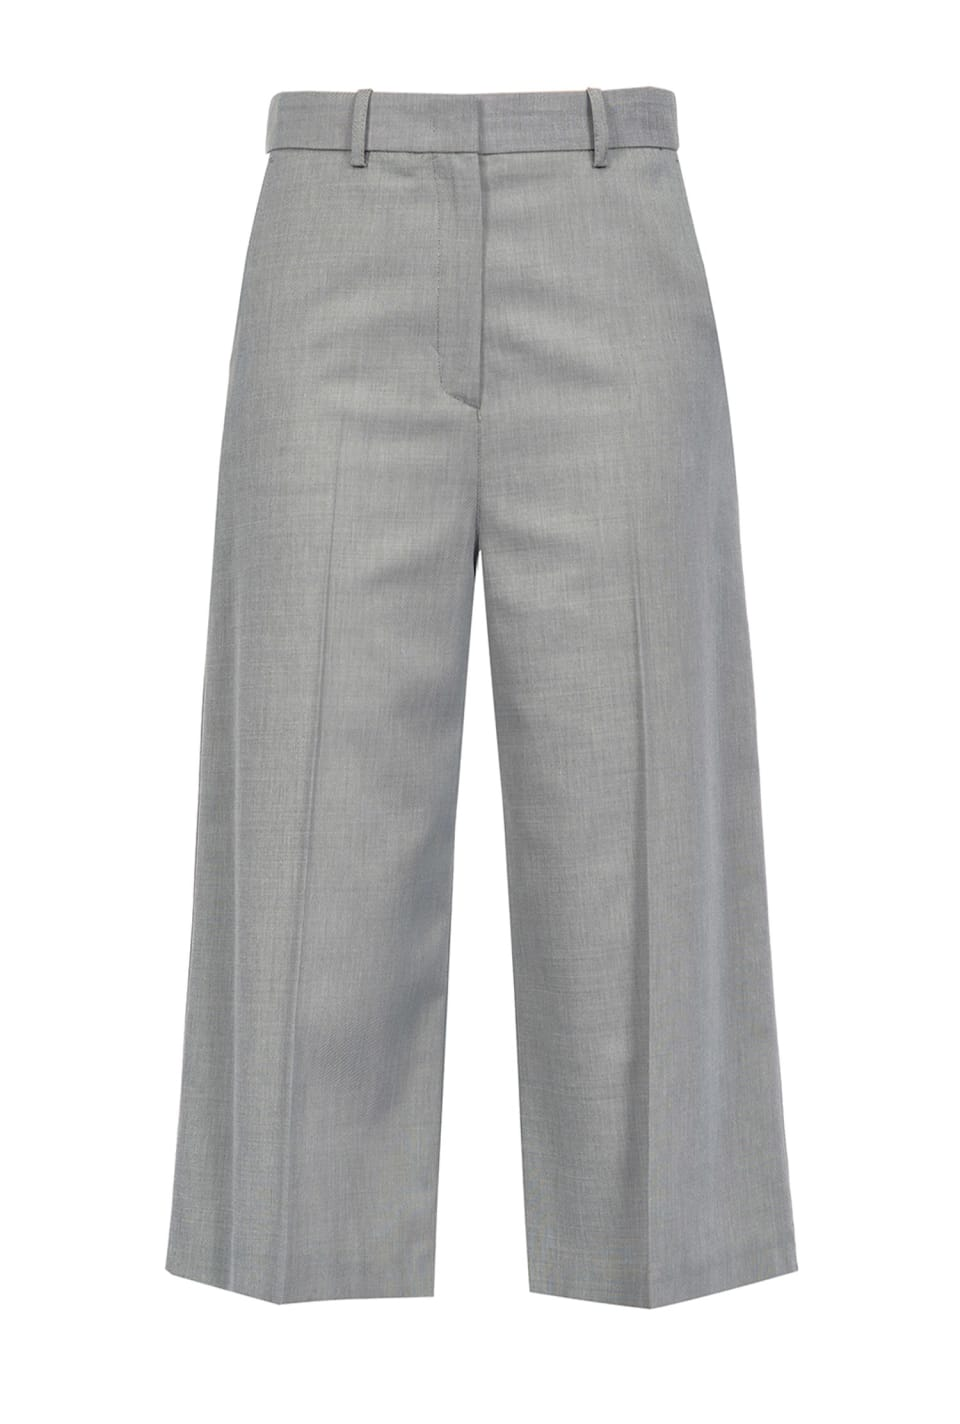 Culottes in grisaille